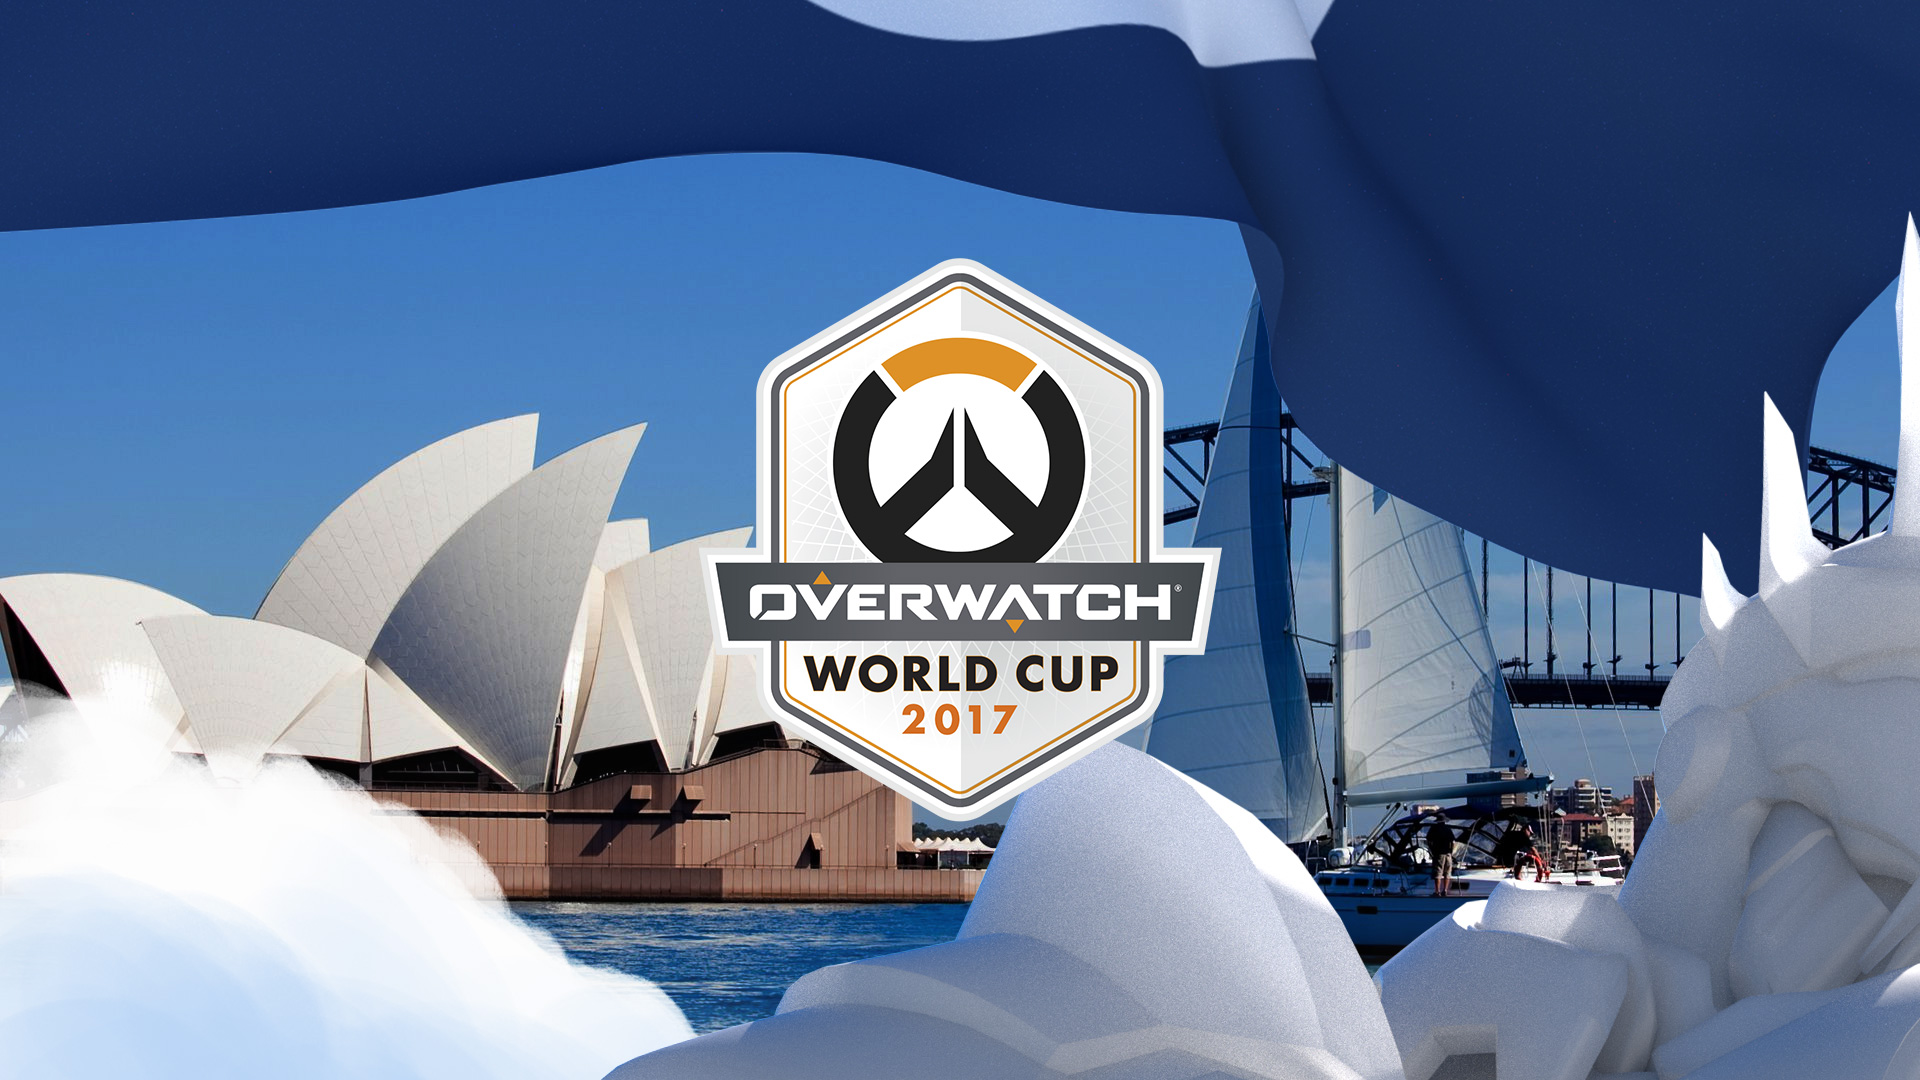 Overwatch World Cup Australia